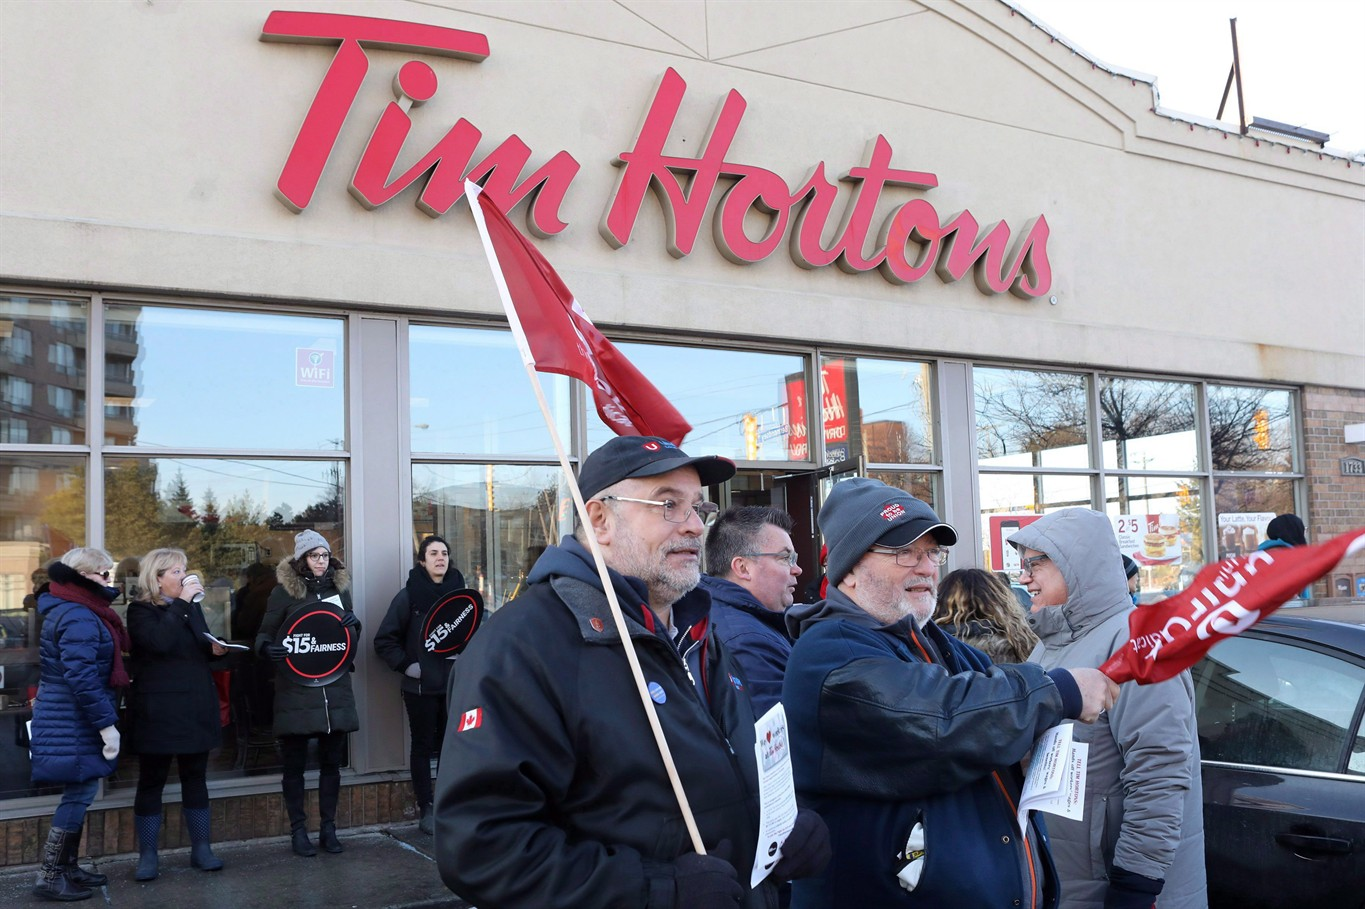 Tim Hortons protests to expand beyond Ontario, 50 demonstrations planned across Canada